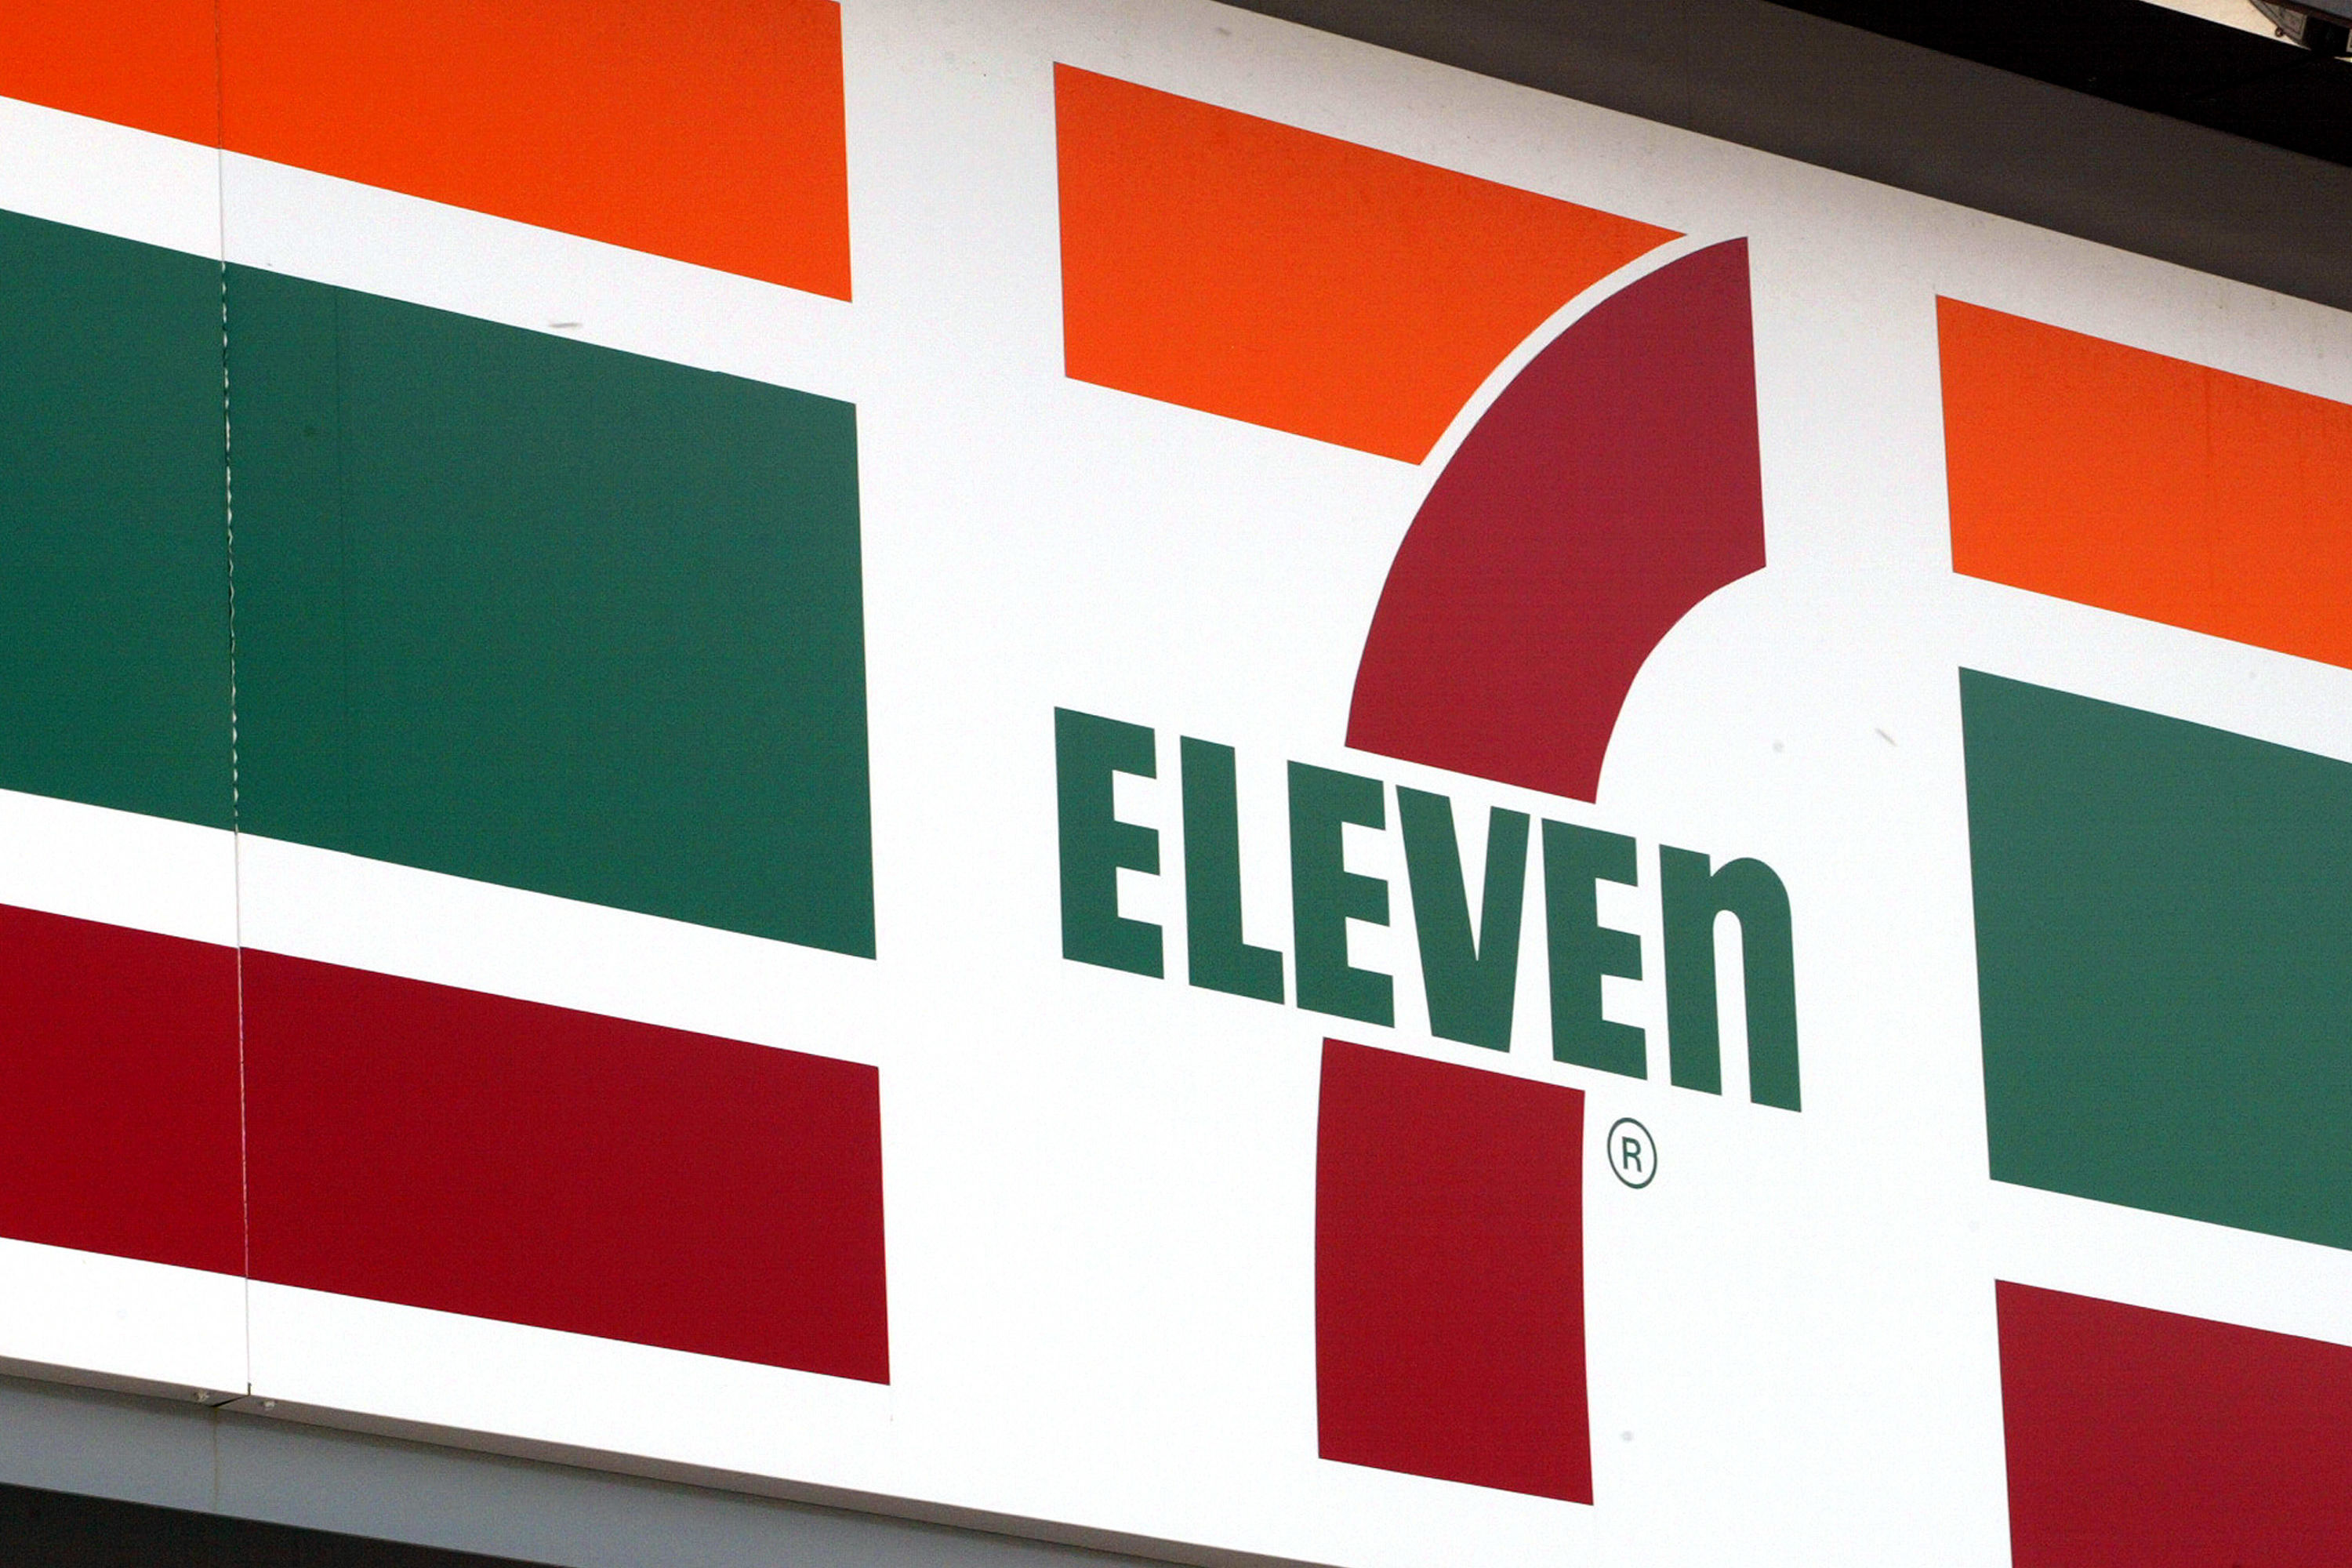 Talk About Convenience! 7-Eleven Expected to Launch Home-Delivery Service in 2018